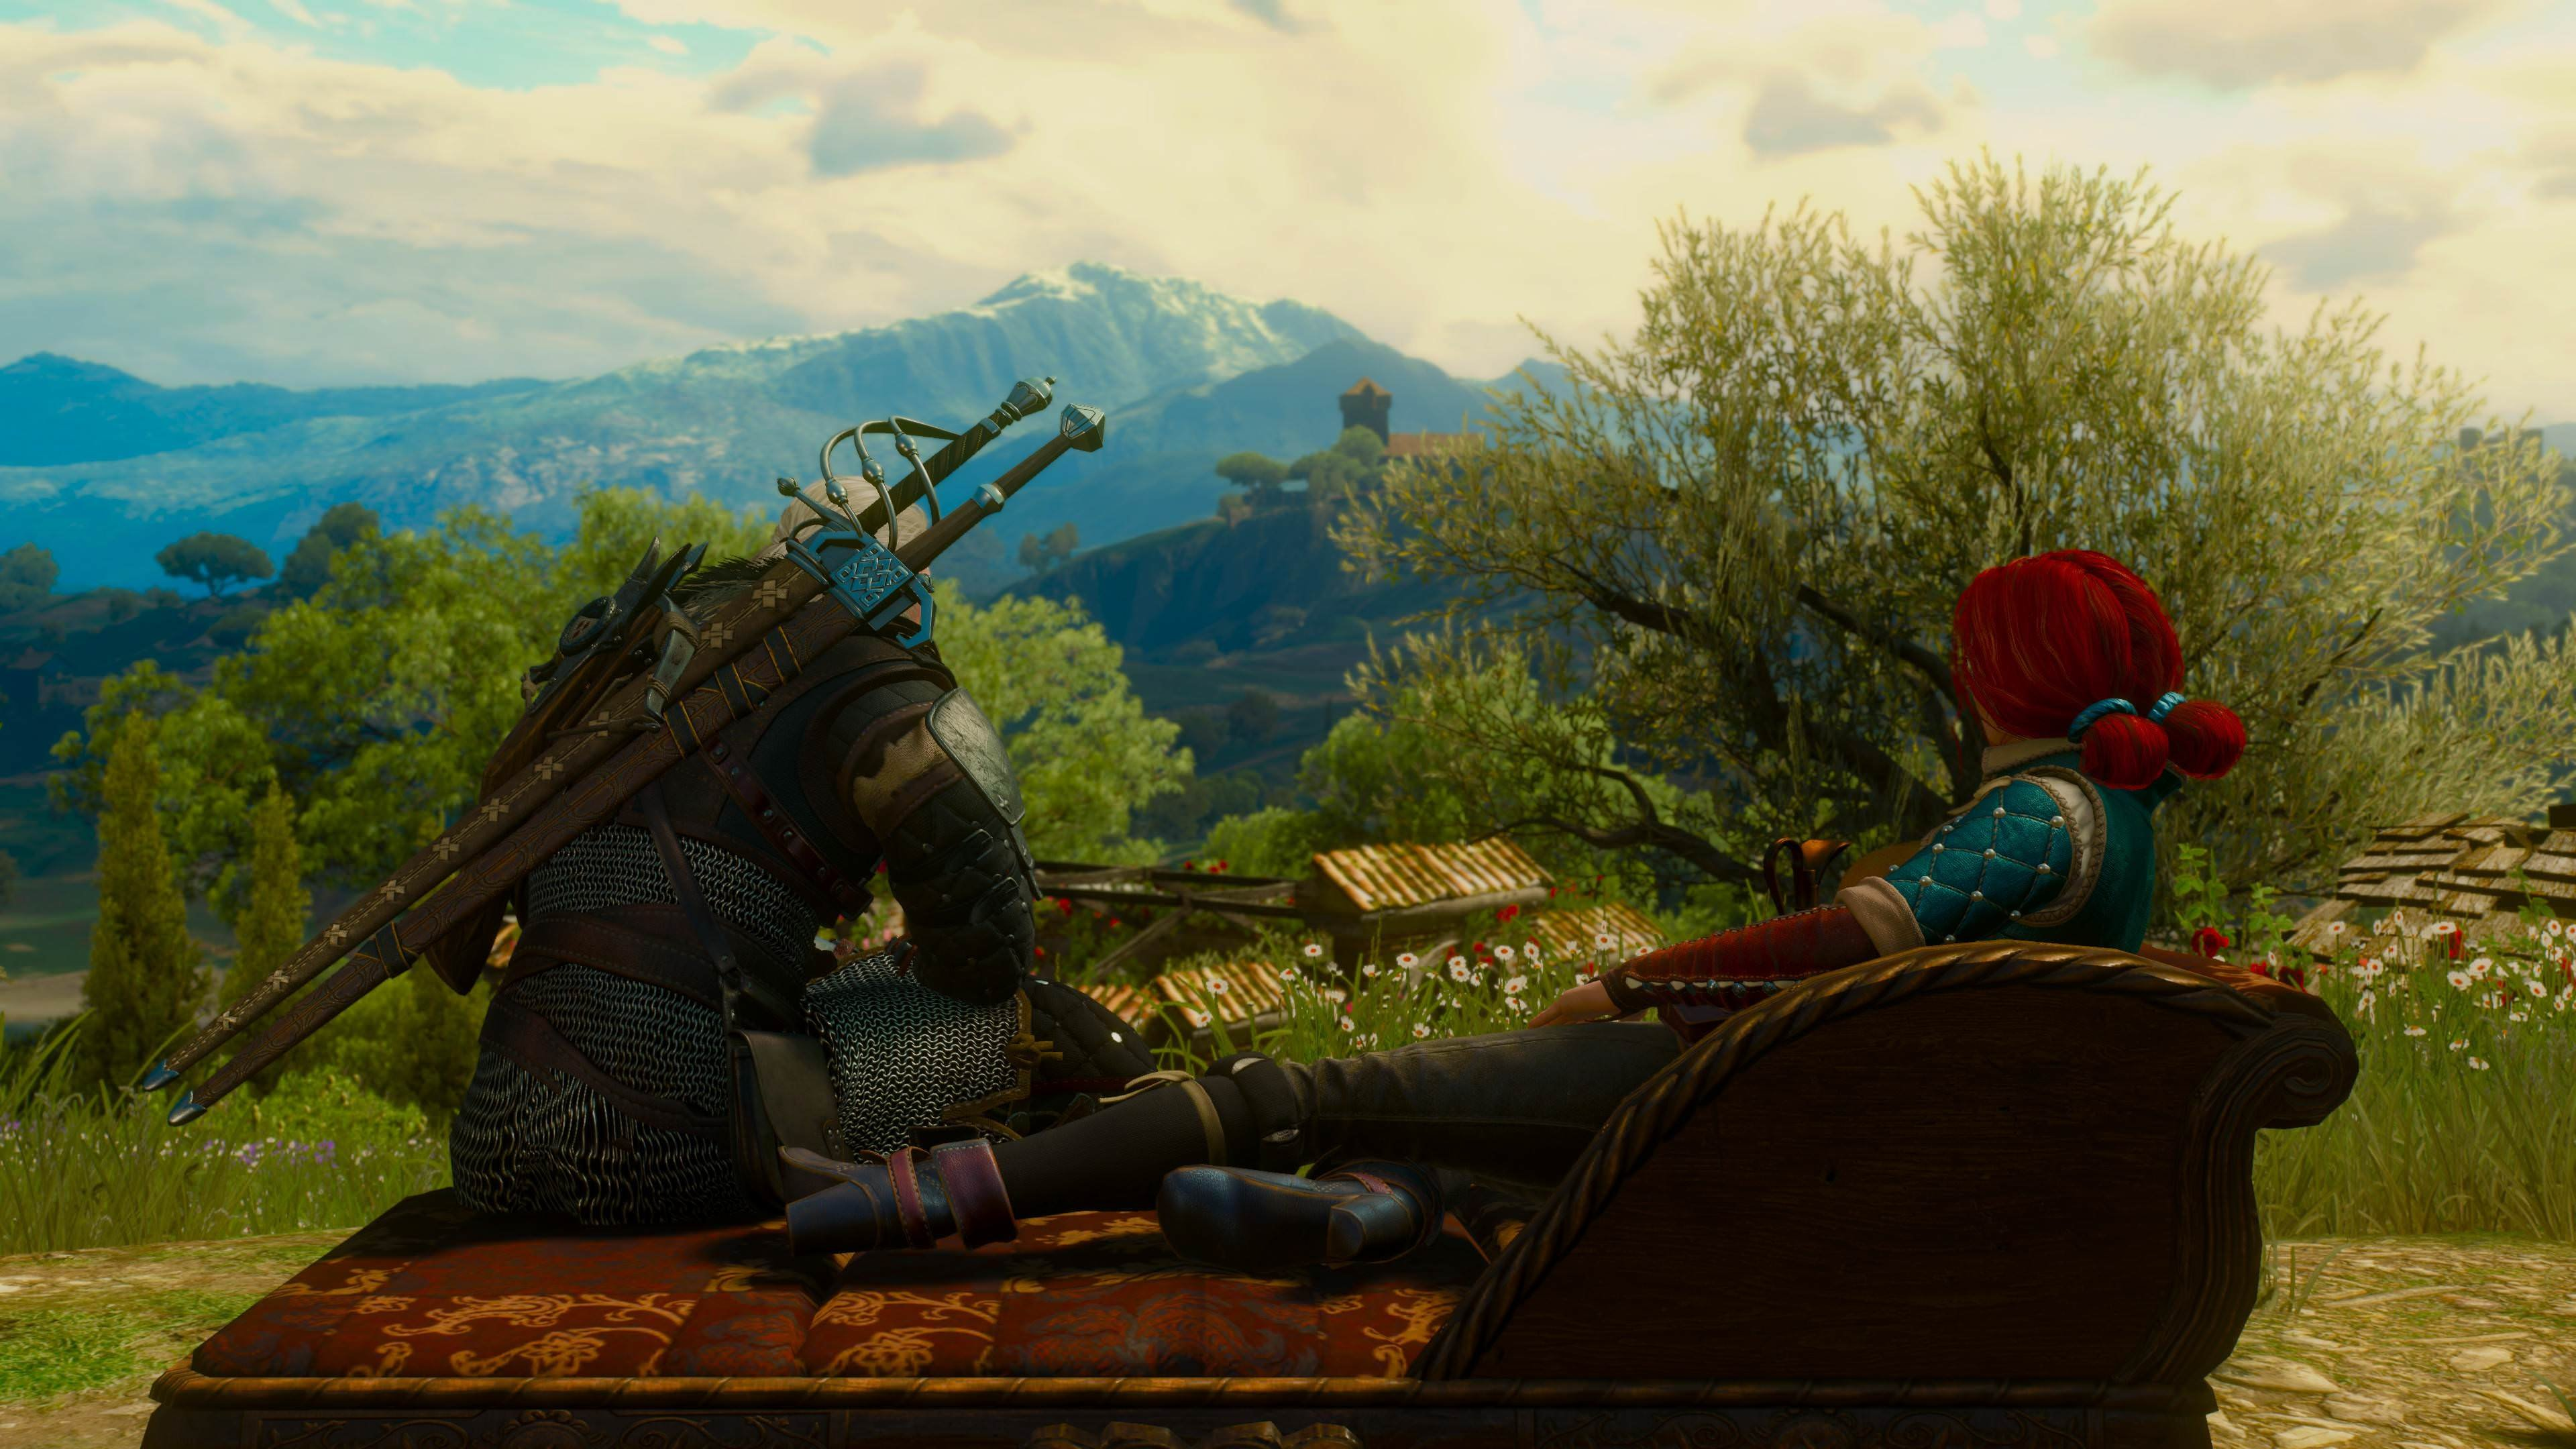 Witcher wallpapers 4k for your phone and desktop screen - The witcher wallpaper 4k ...